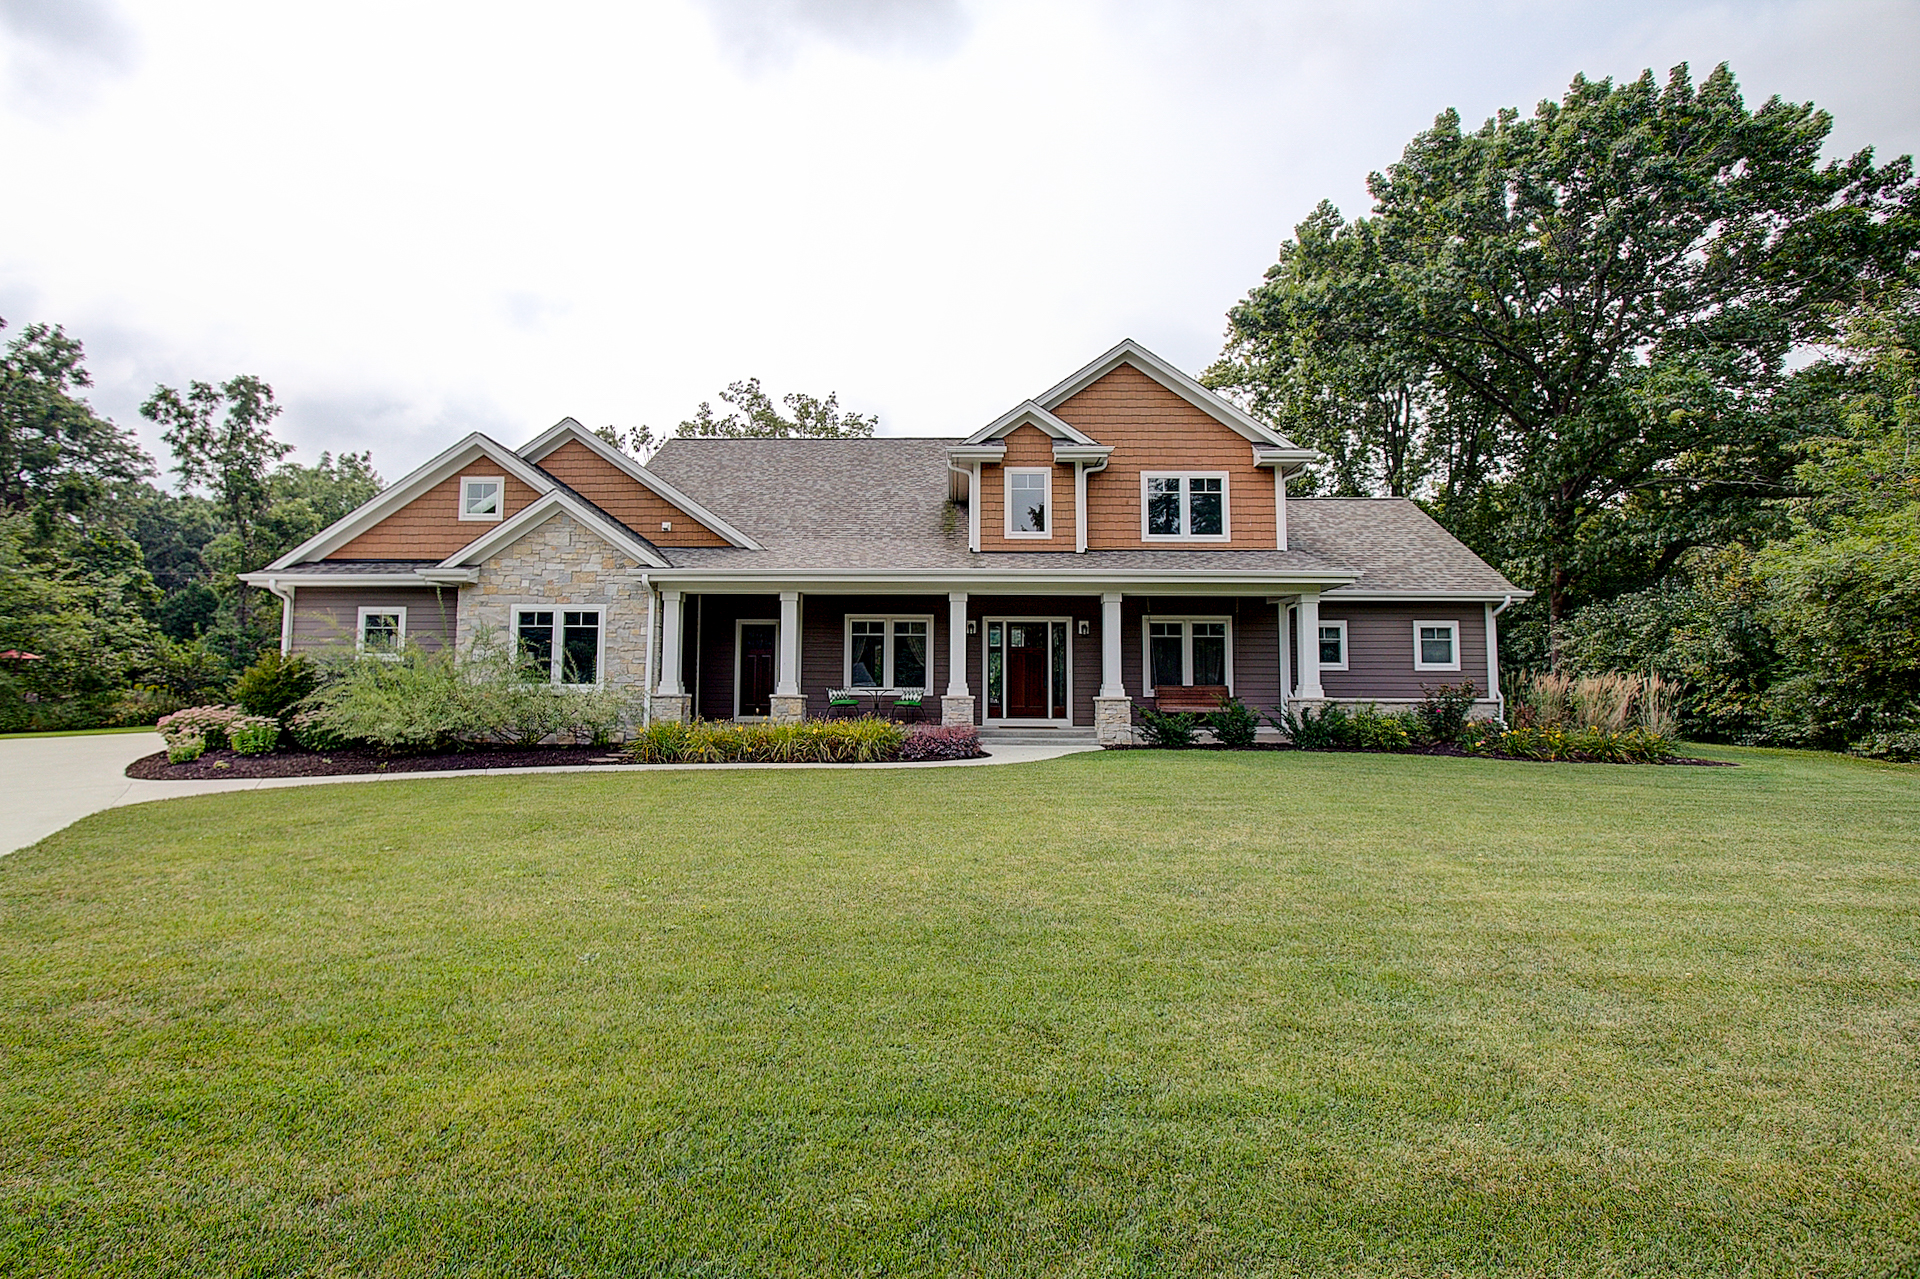 15105 Froedtert Dr Elm Grove WI 53122